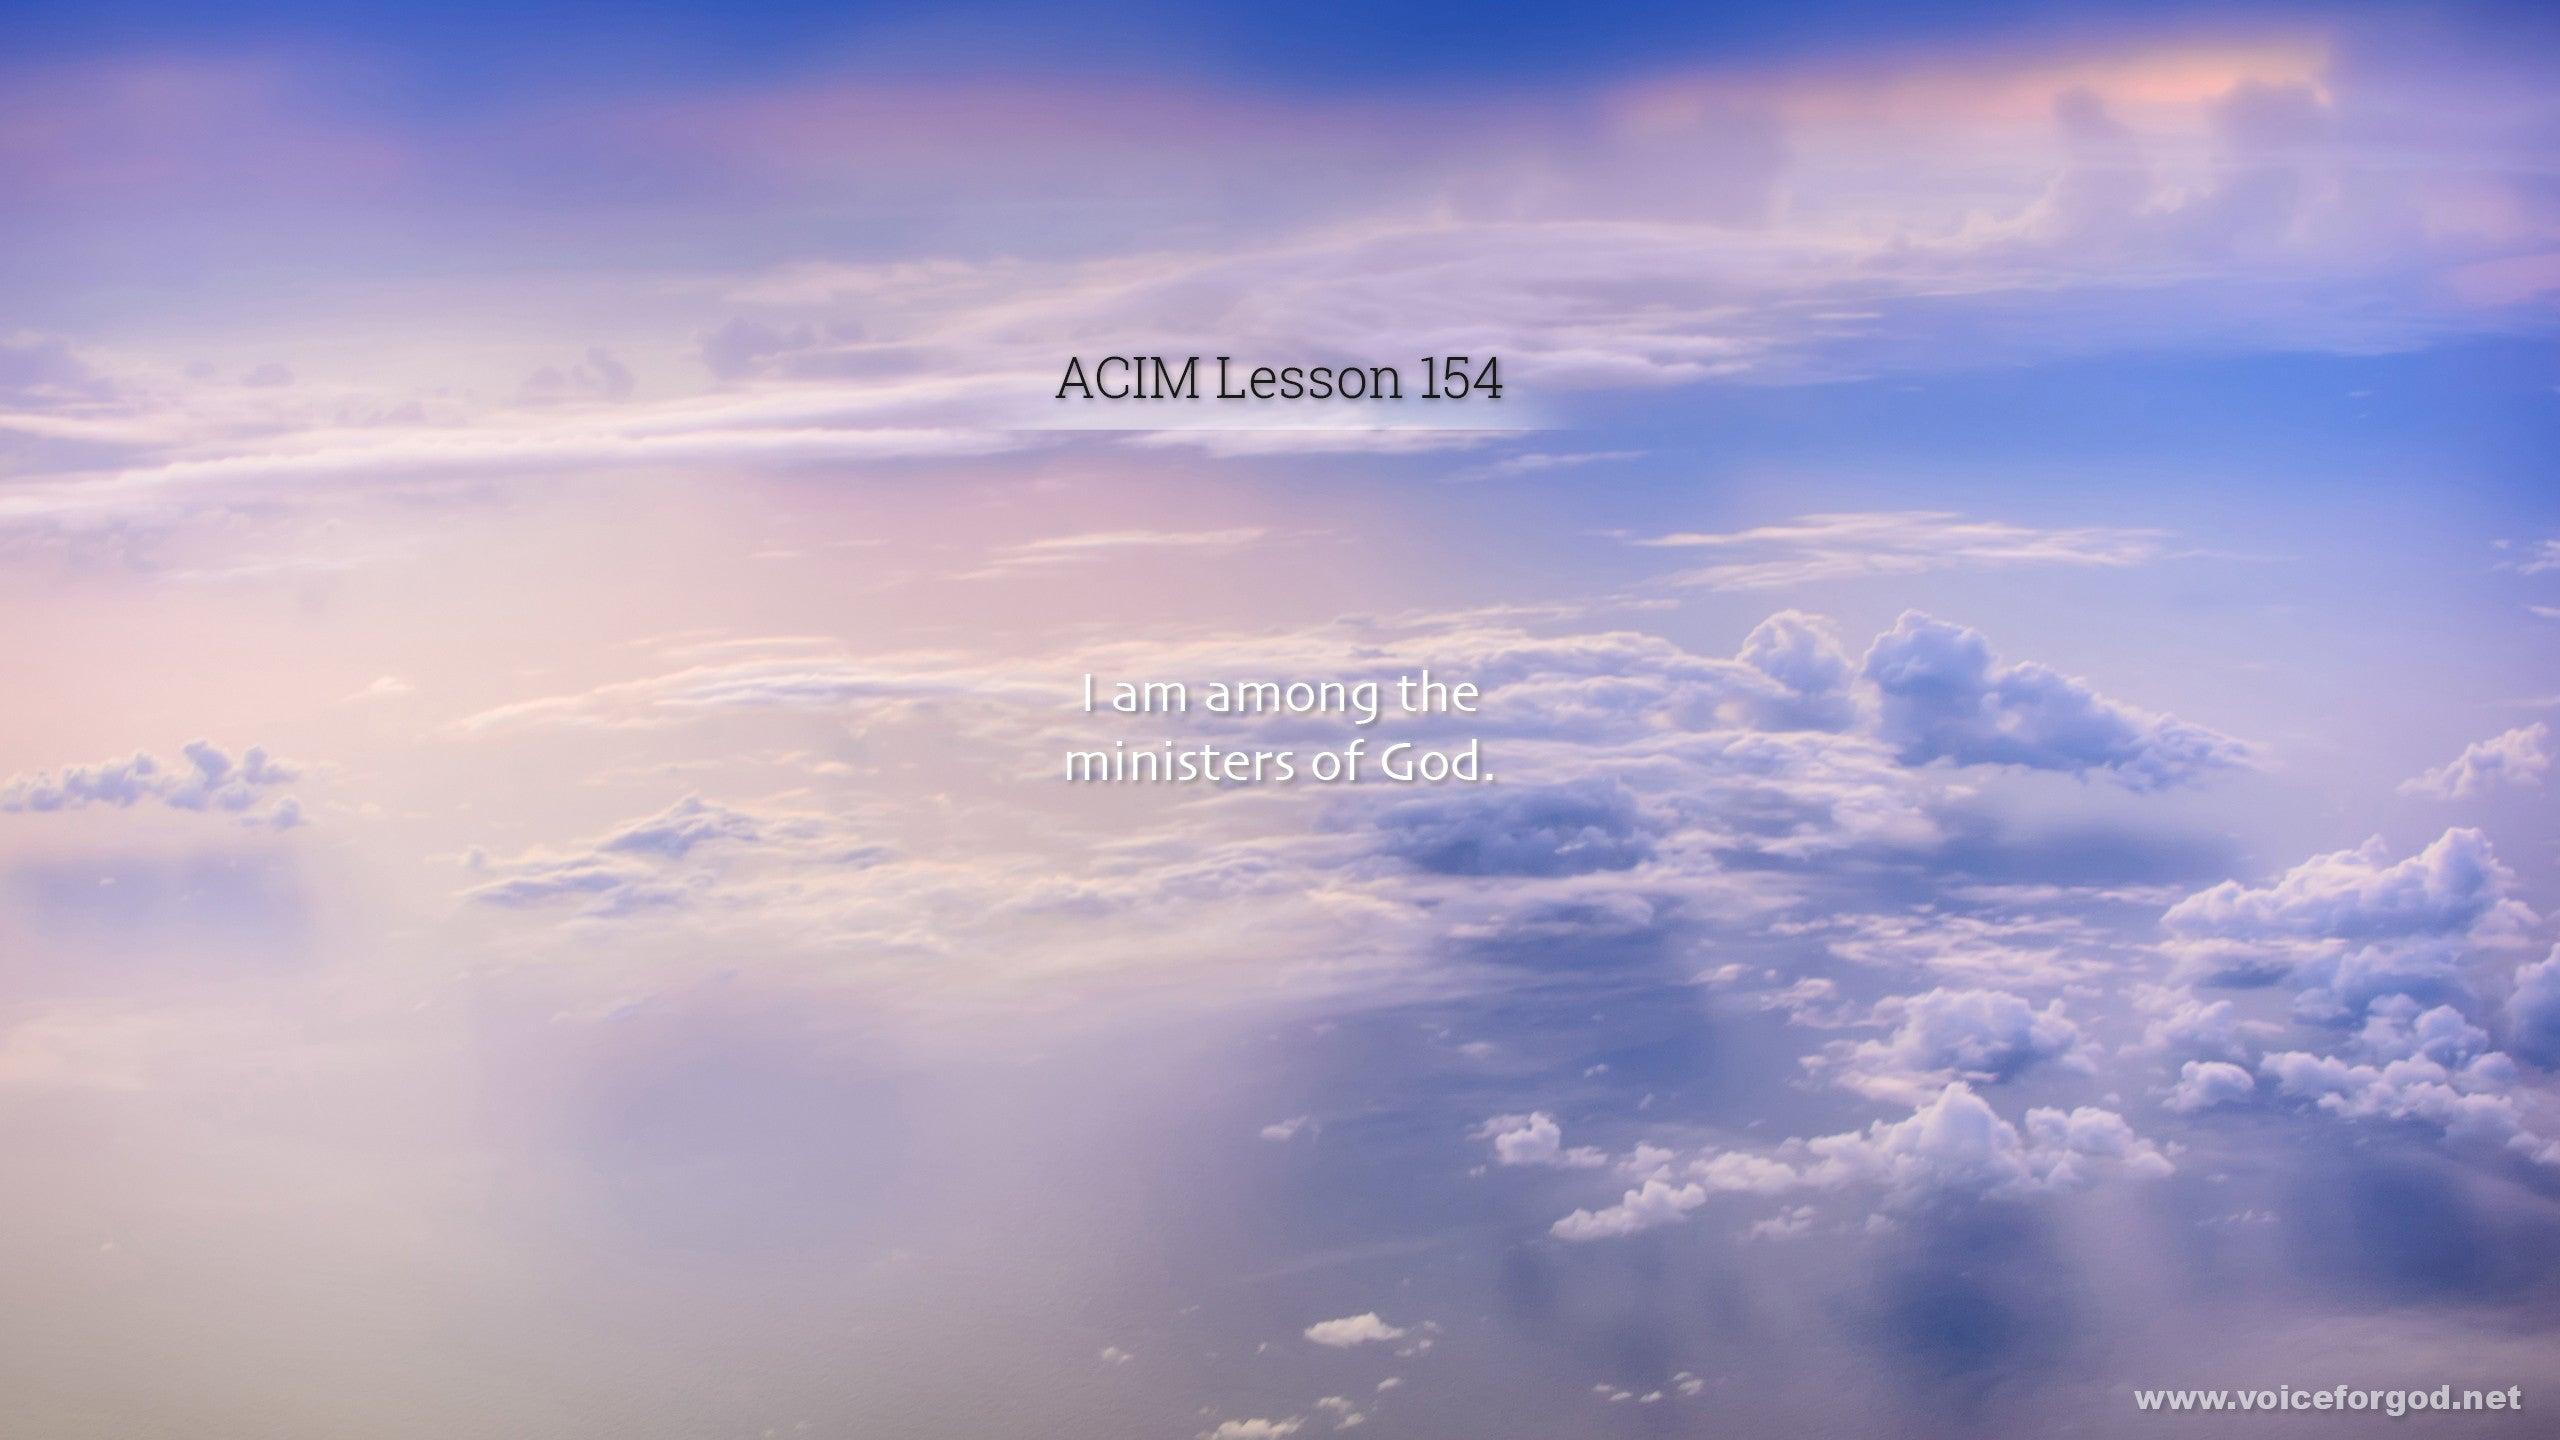 ACIM Lesson 154 - A Course in Miracles Workbook Lesson 154